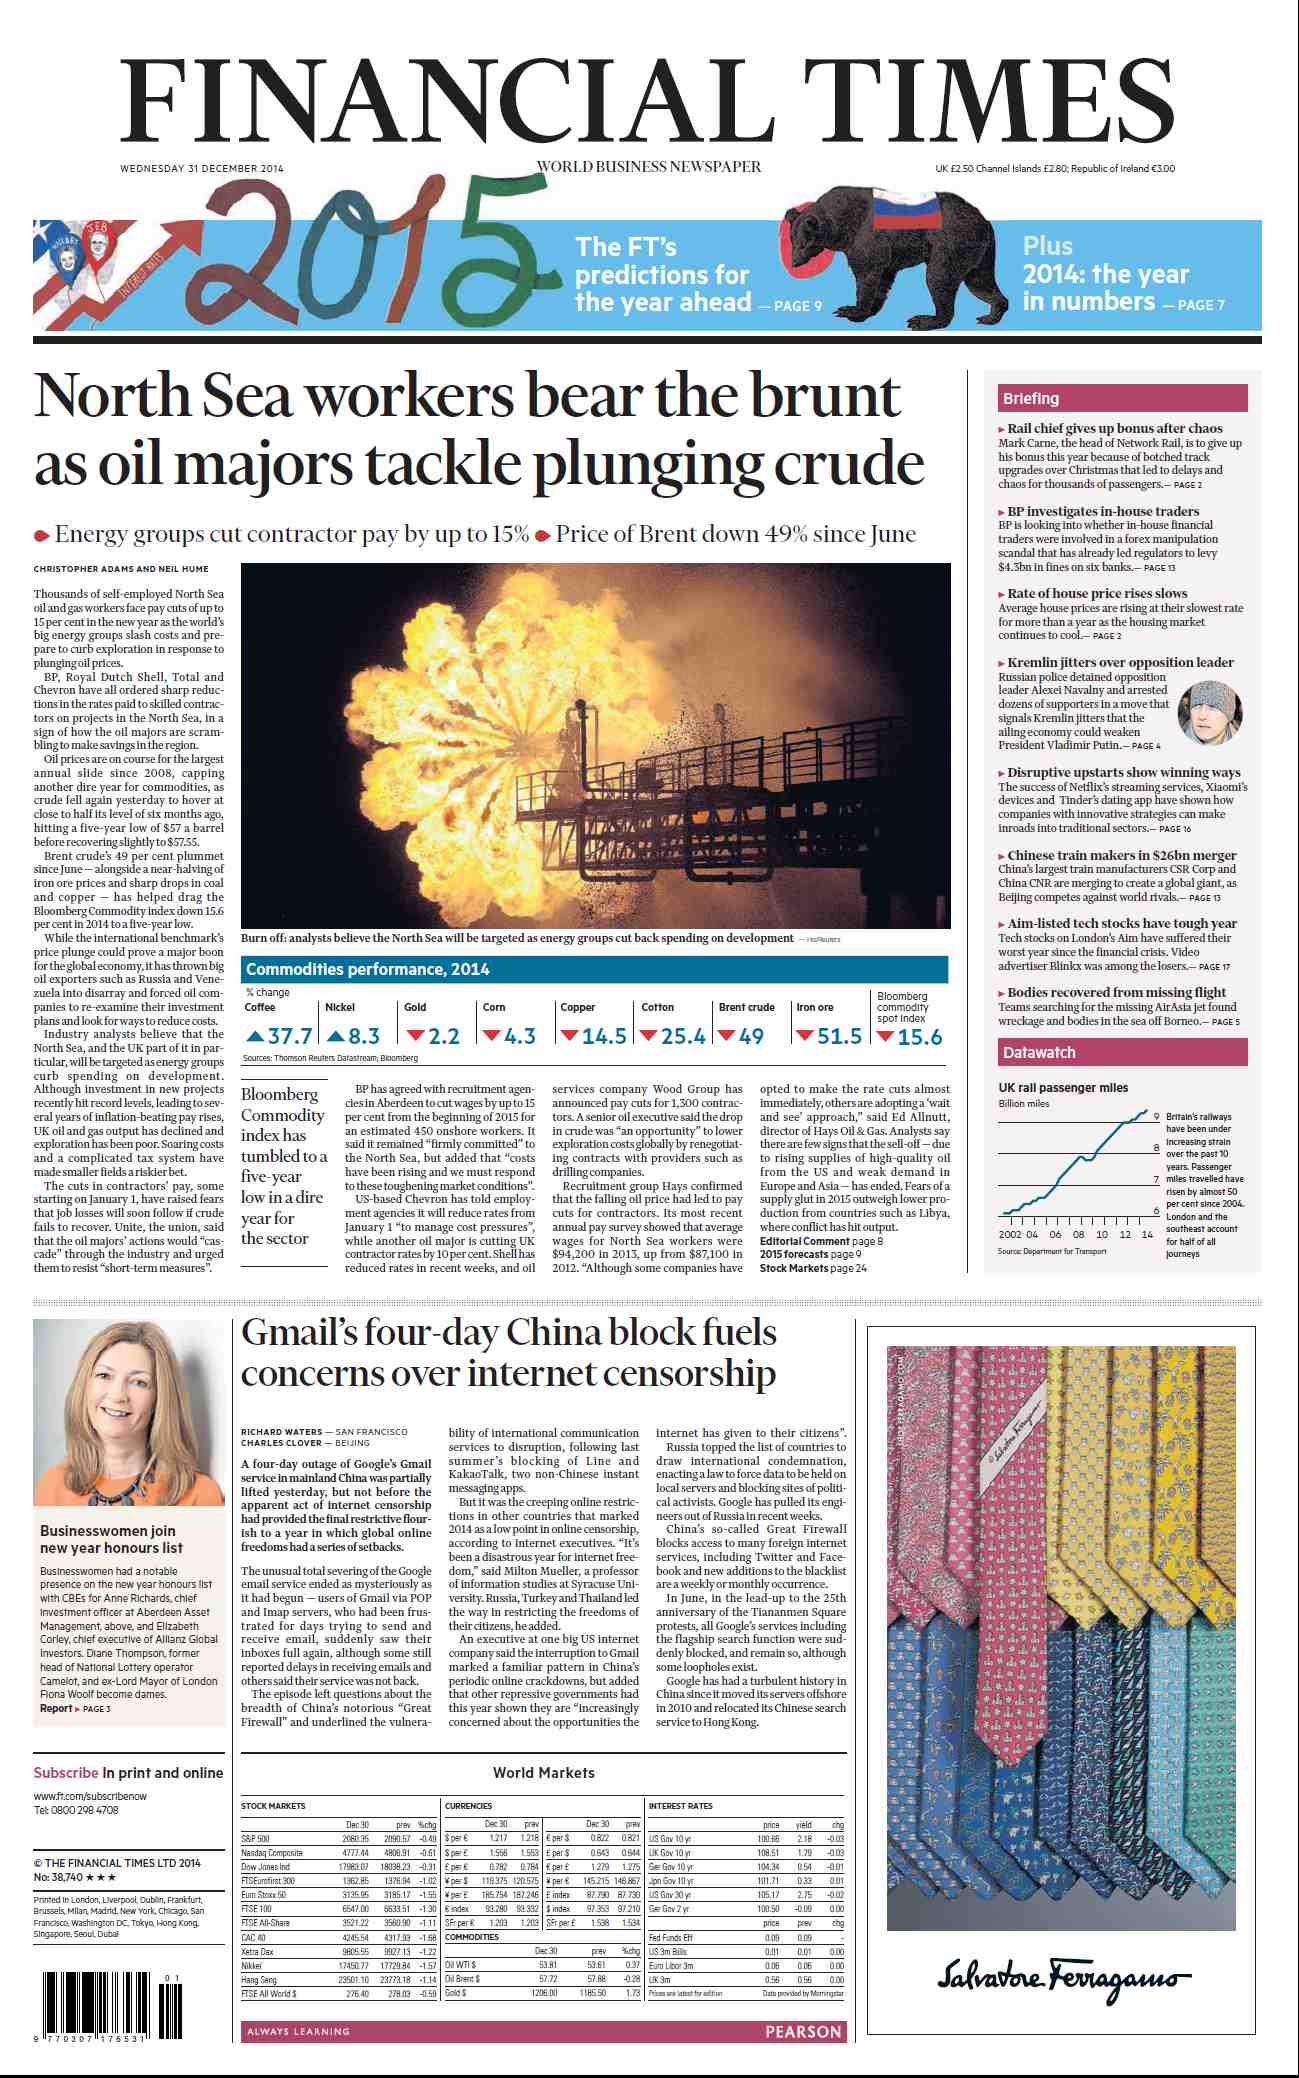 Financial Times UK  December 31, 2014 free download